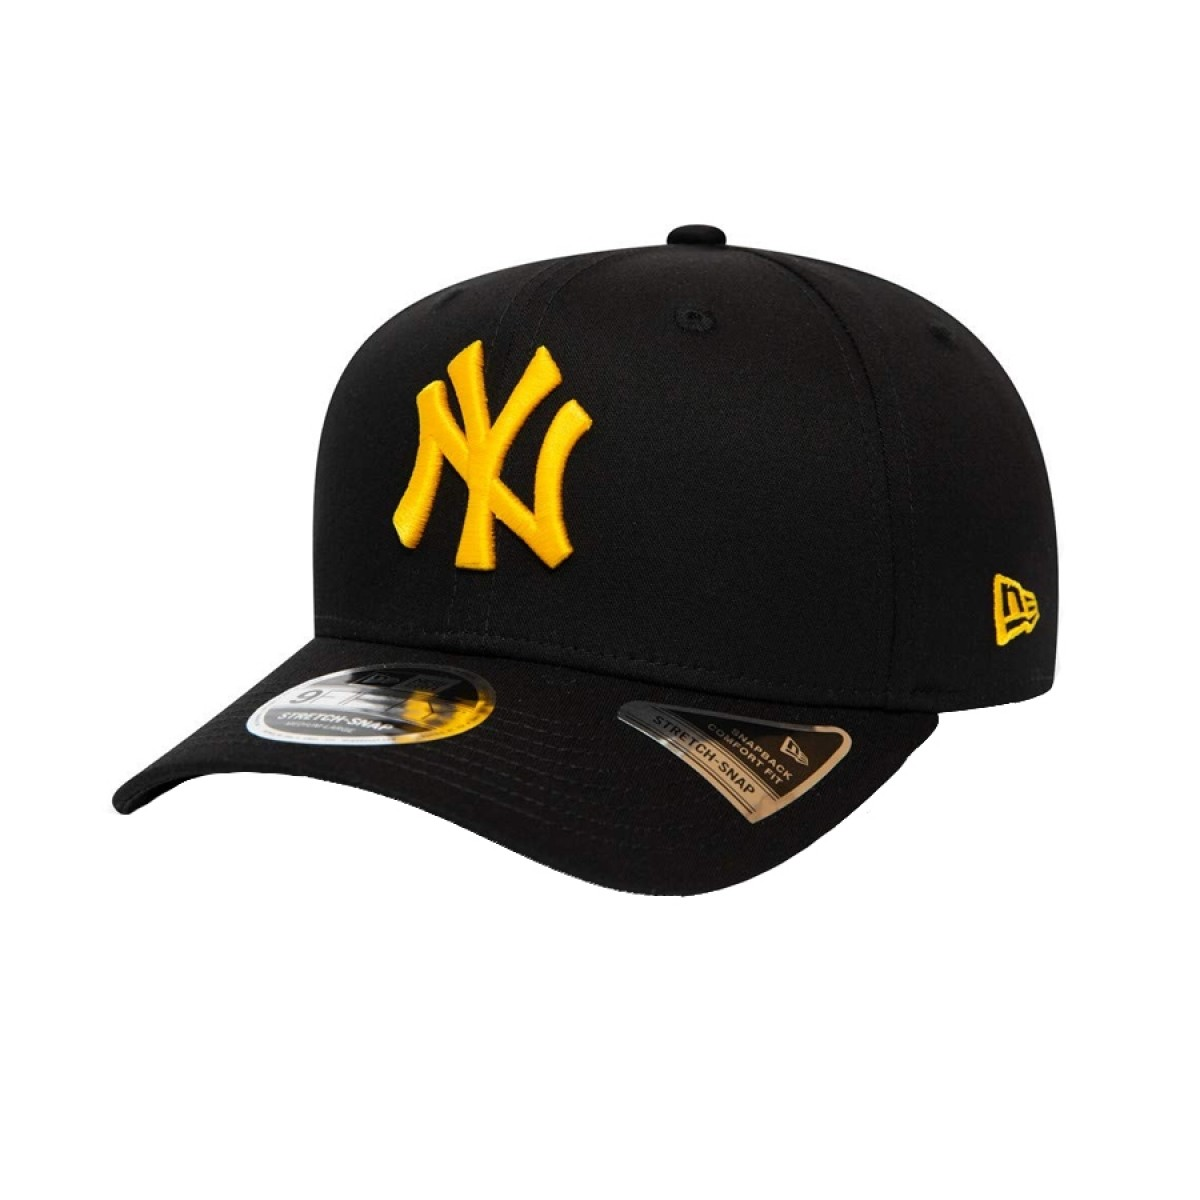 New Era 9 Fifty MLB NY 'Black'